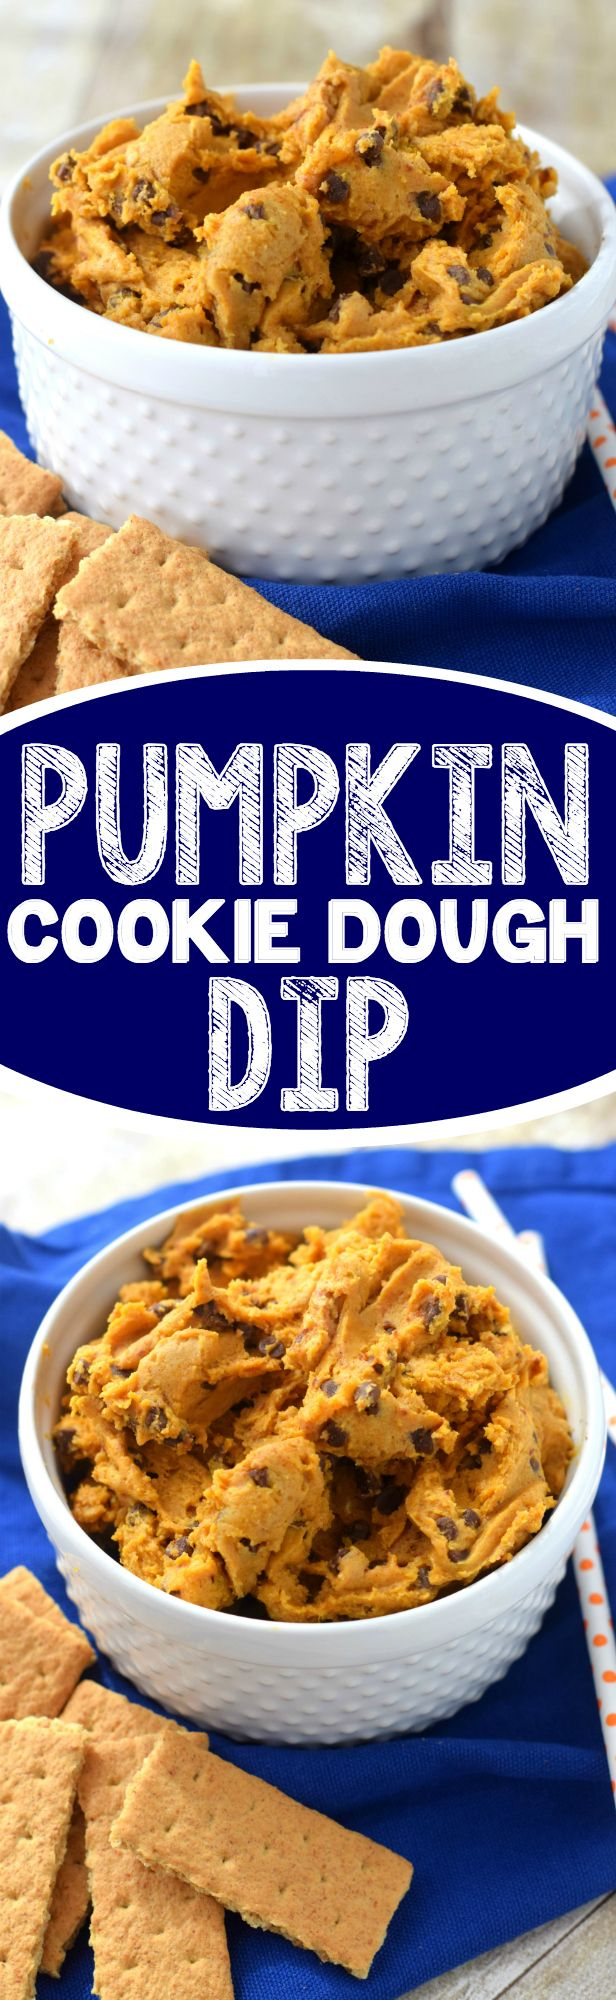 This Pumpkin Cookie Dough Dip is the real deal!  Egg free, pumpkinrific, and totally delicious!: